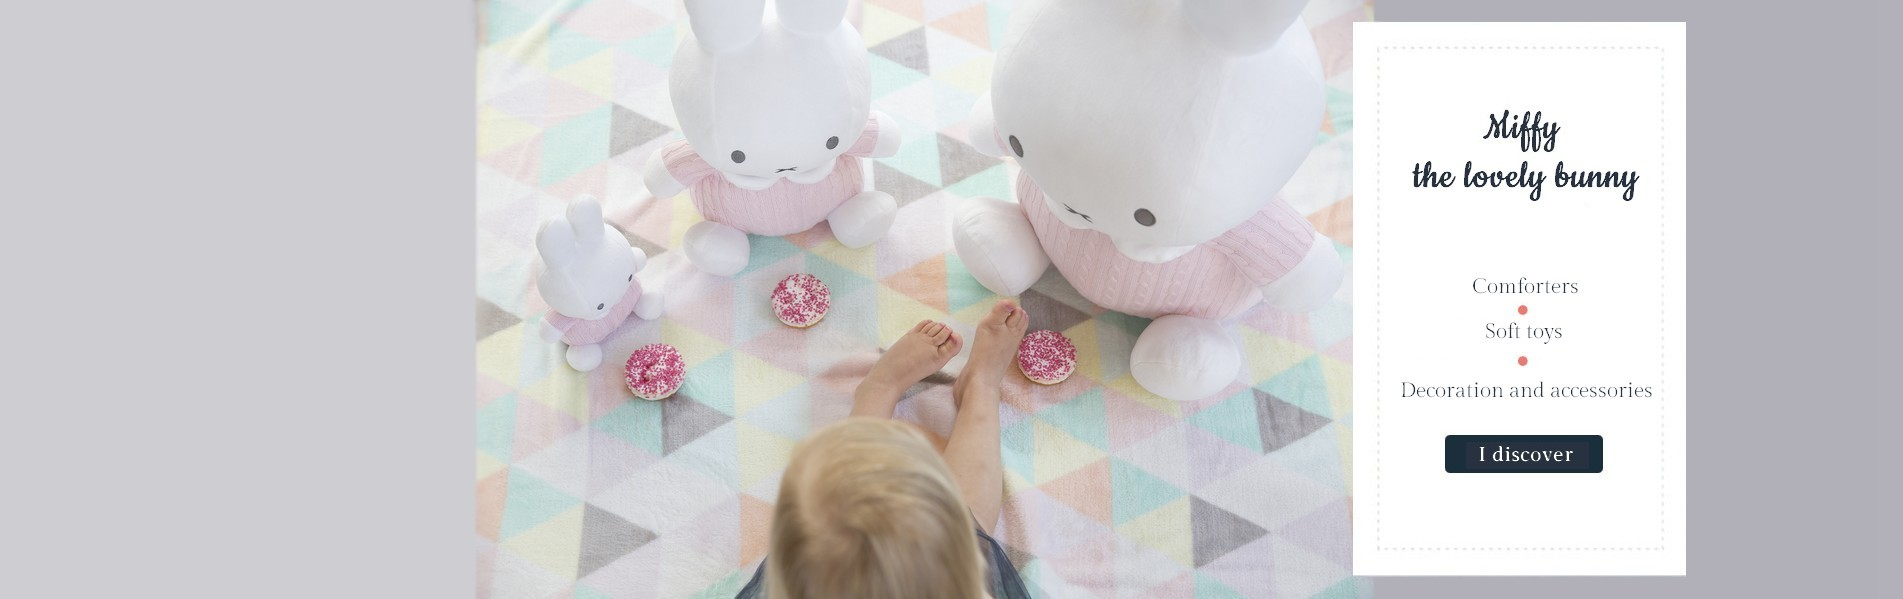 Miffy - soft toys and decoration